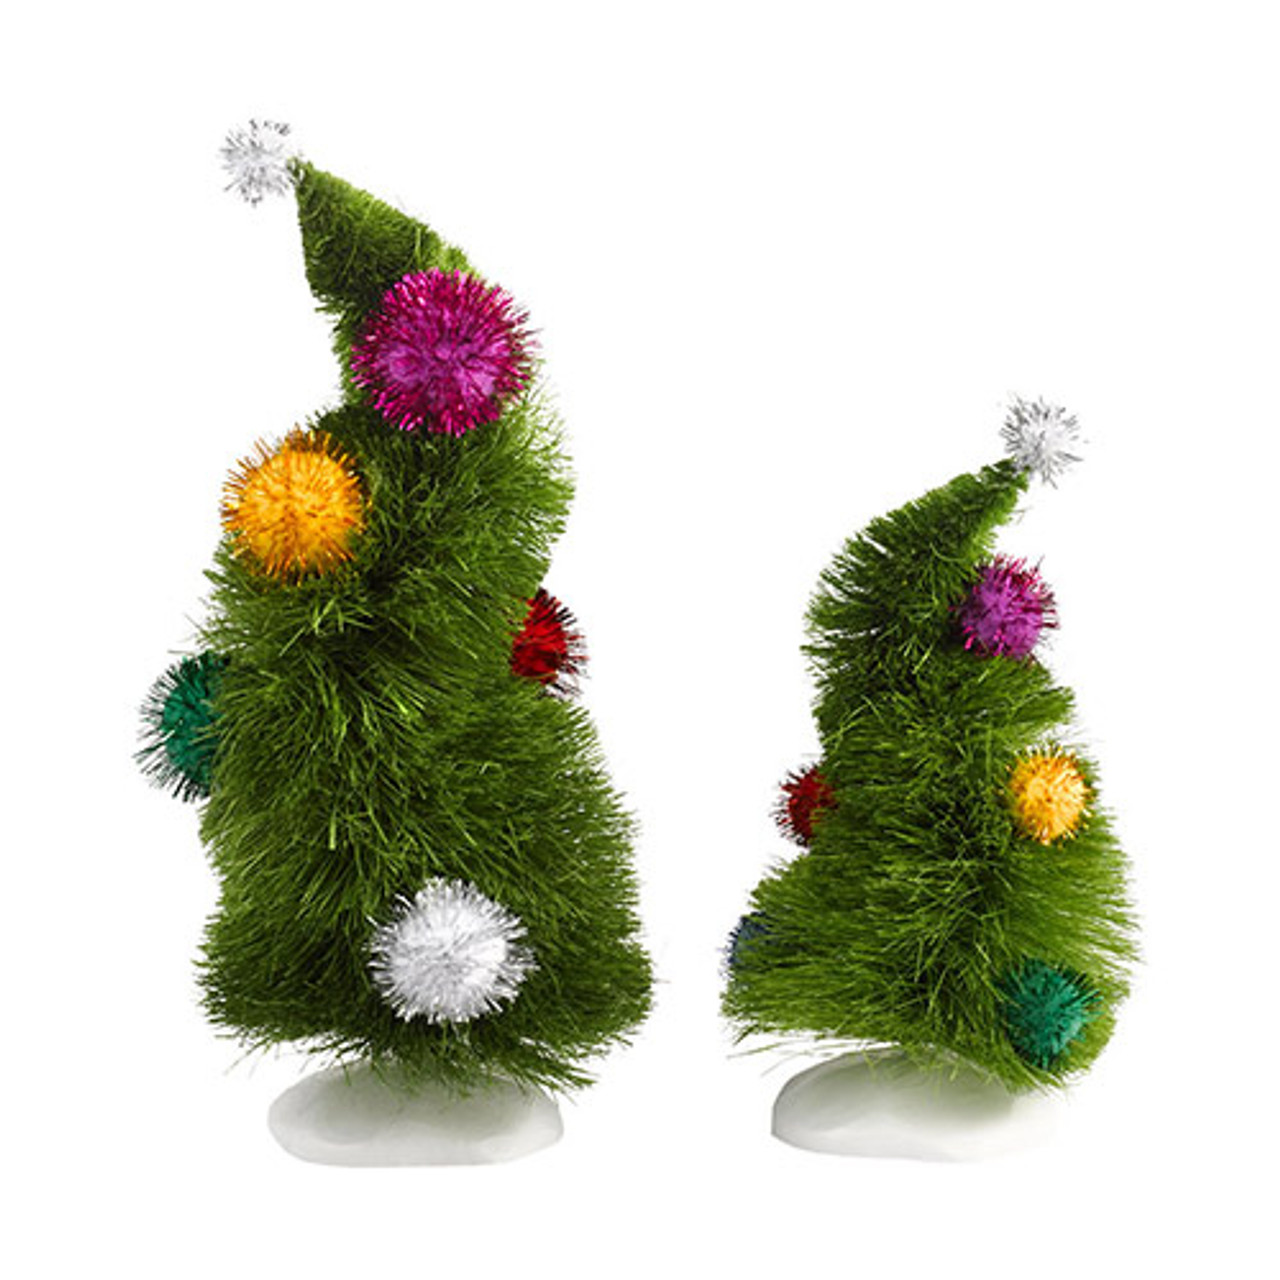 The Grinch Christmas Tree.Dept 56 The Grinch Wonky Trees Set Of 2